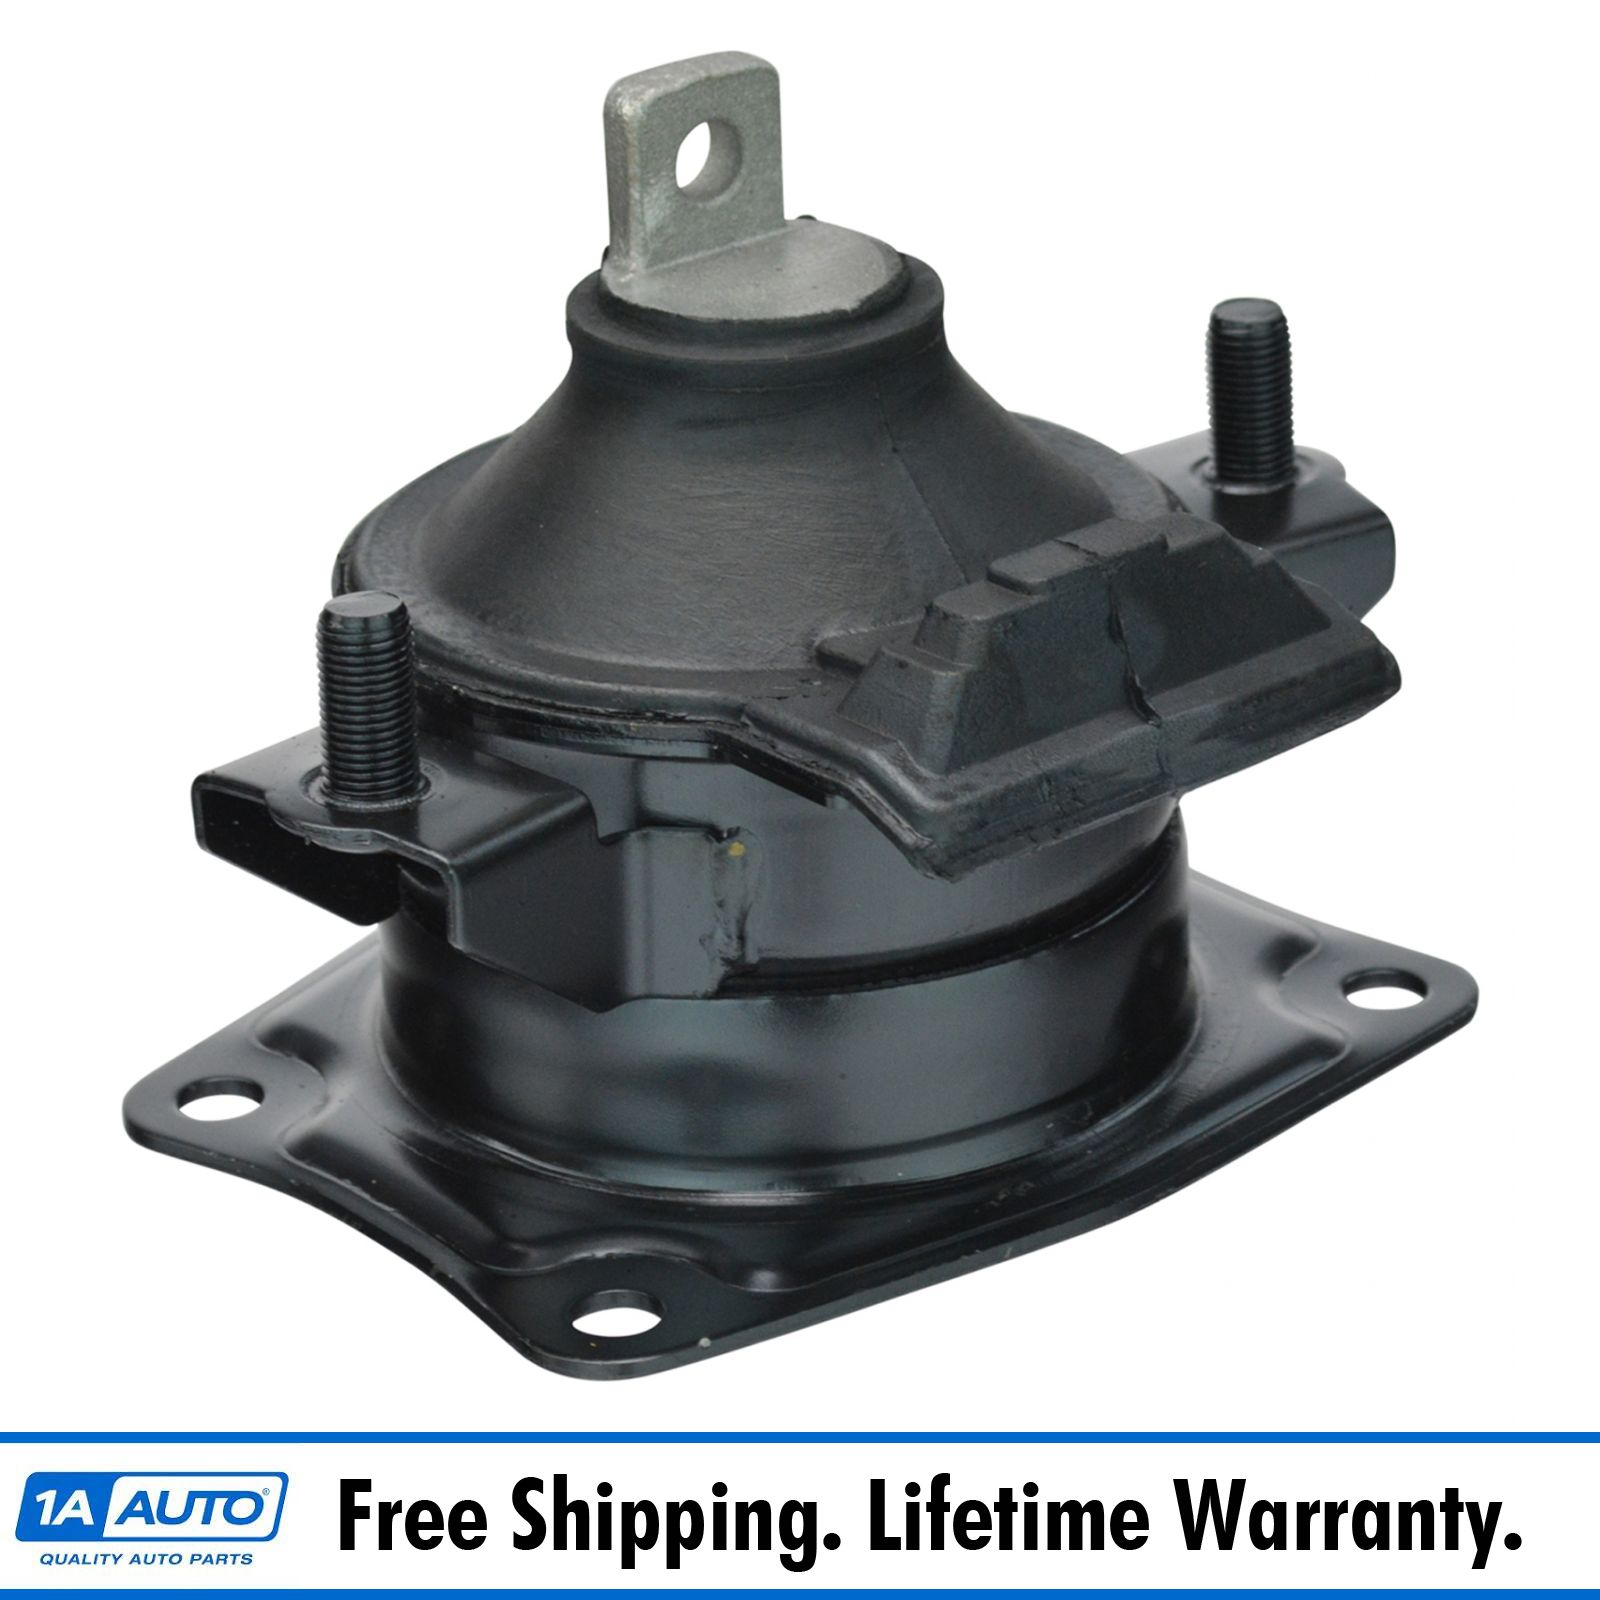 Acura Tsx 2004 2005 Engine Mount: Rear Back Firewall Side Motor Engine Mount For Acura TSX